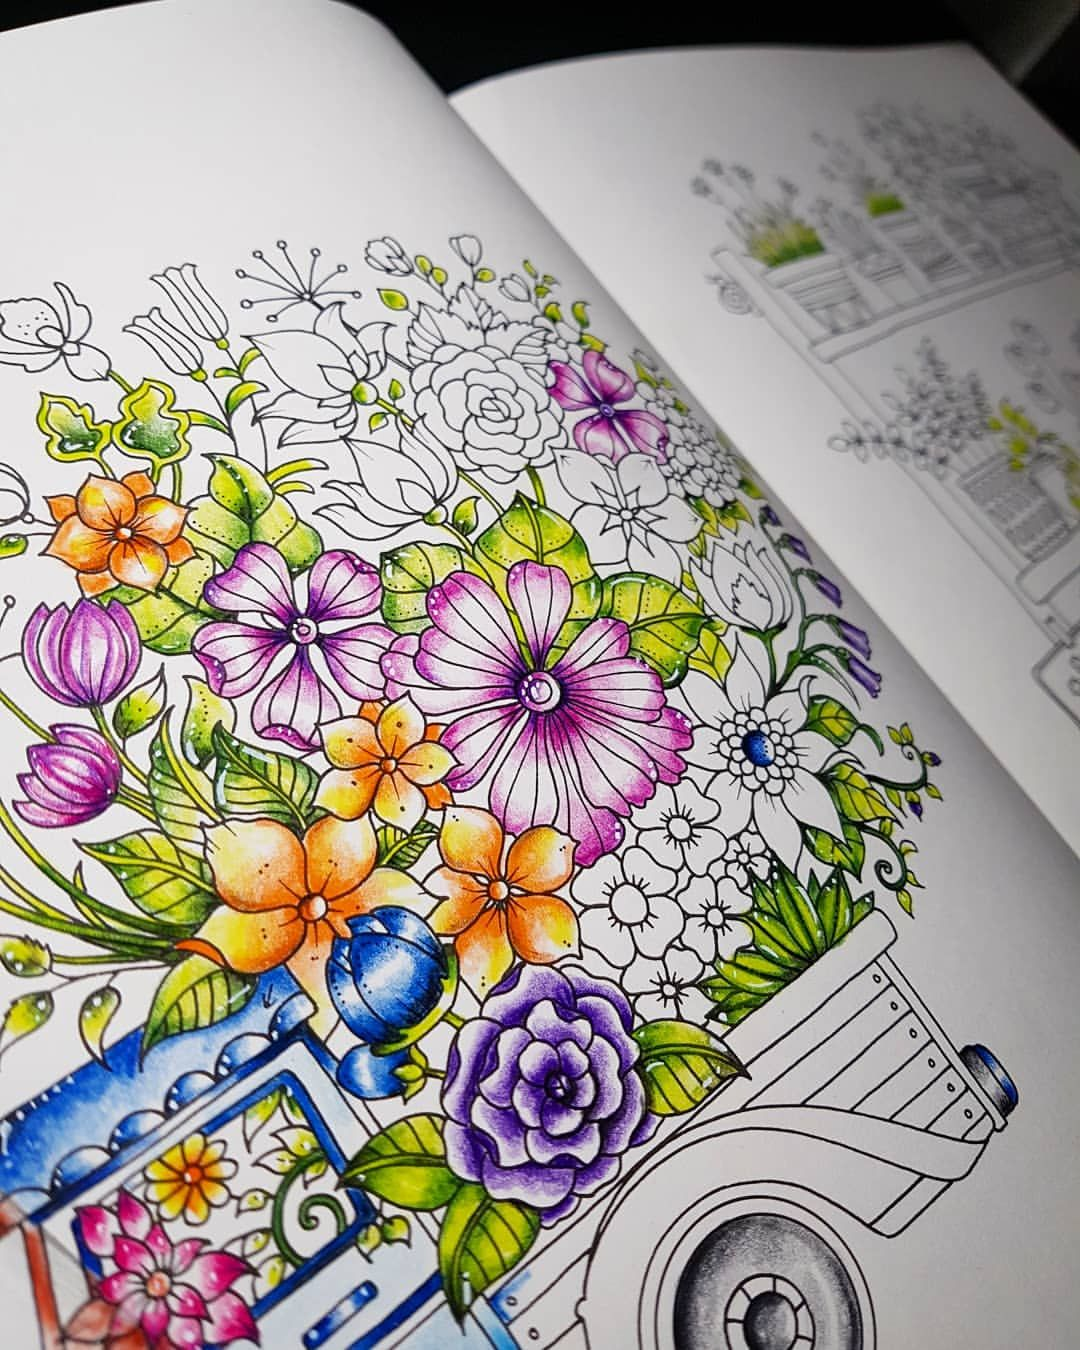 Worldofflowers Wip Coloriage Livredecoloriage Dessinatrice